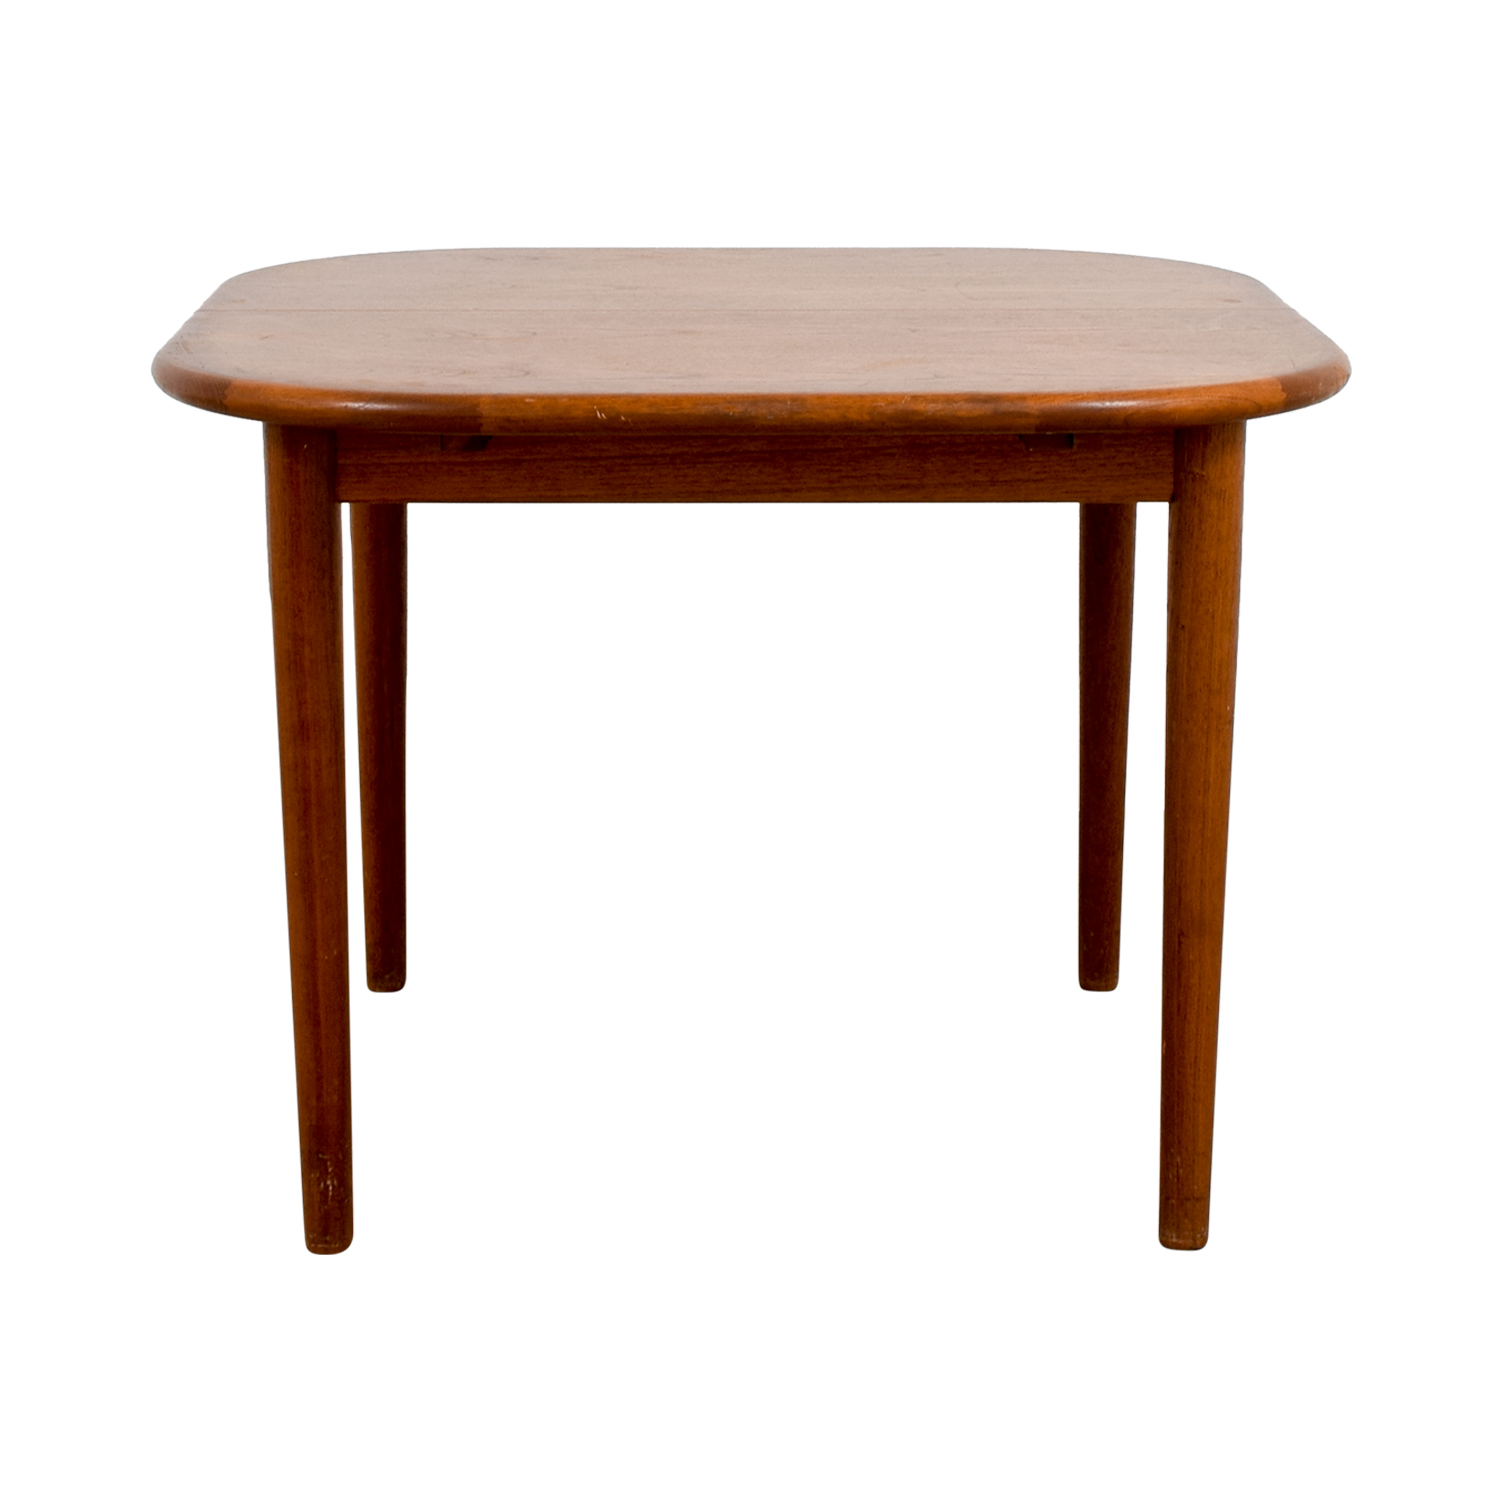 Rounded Square Dining Table nj